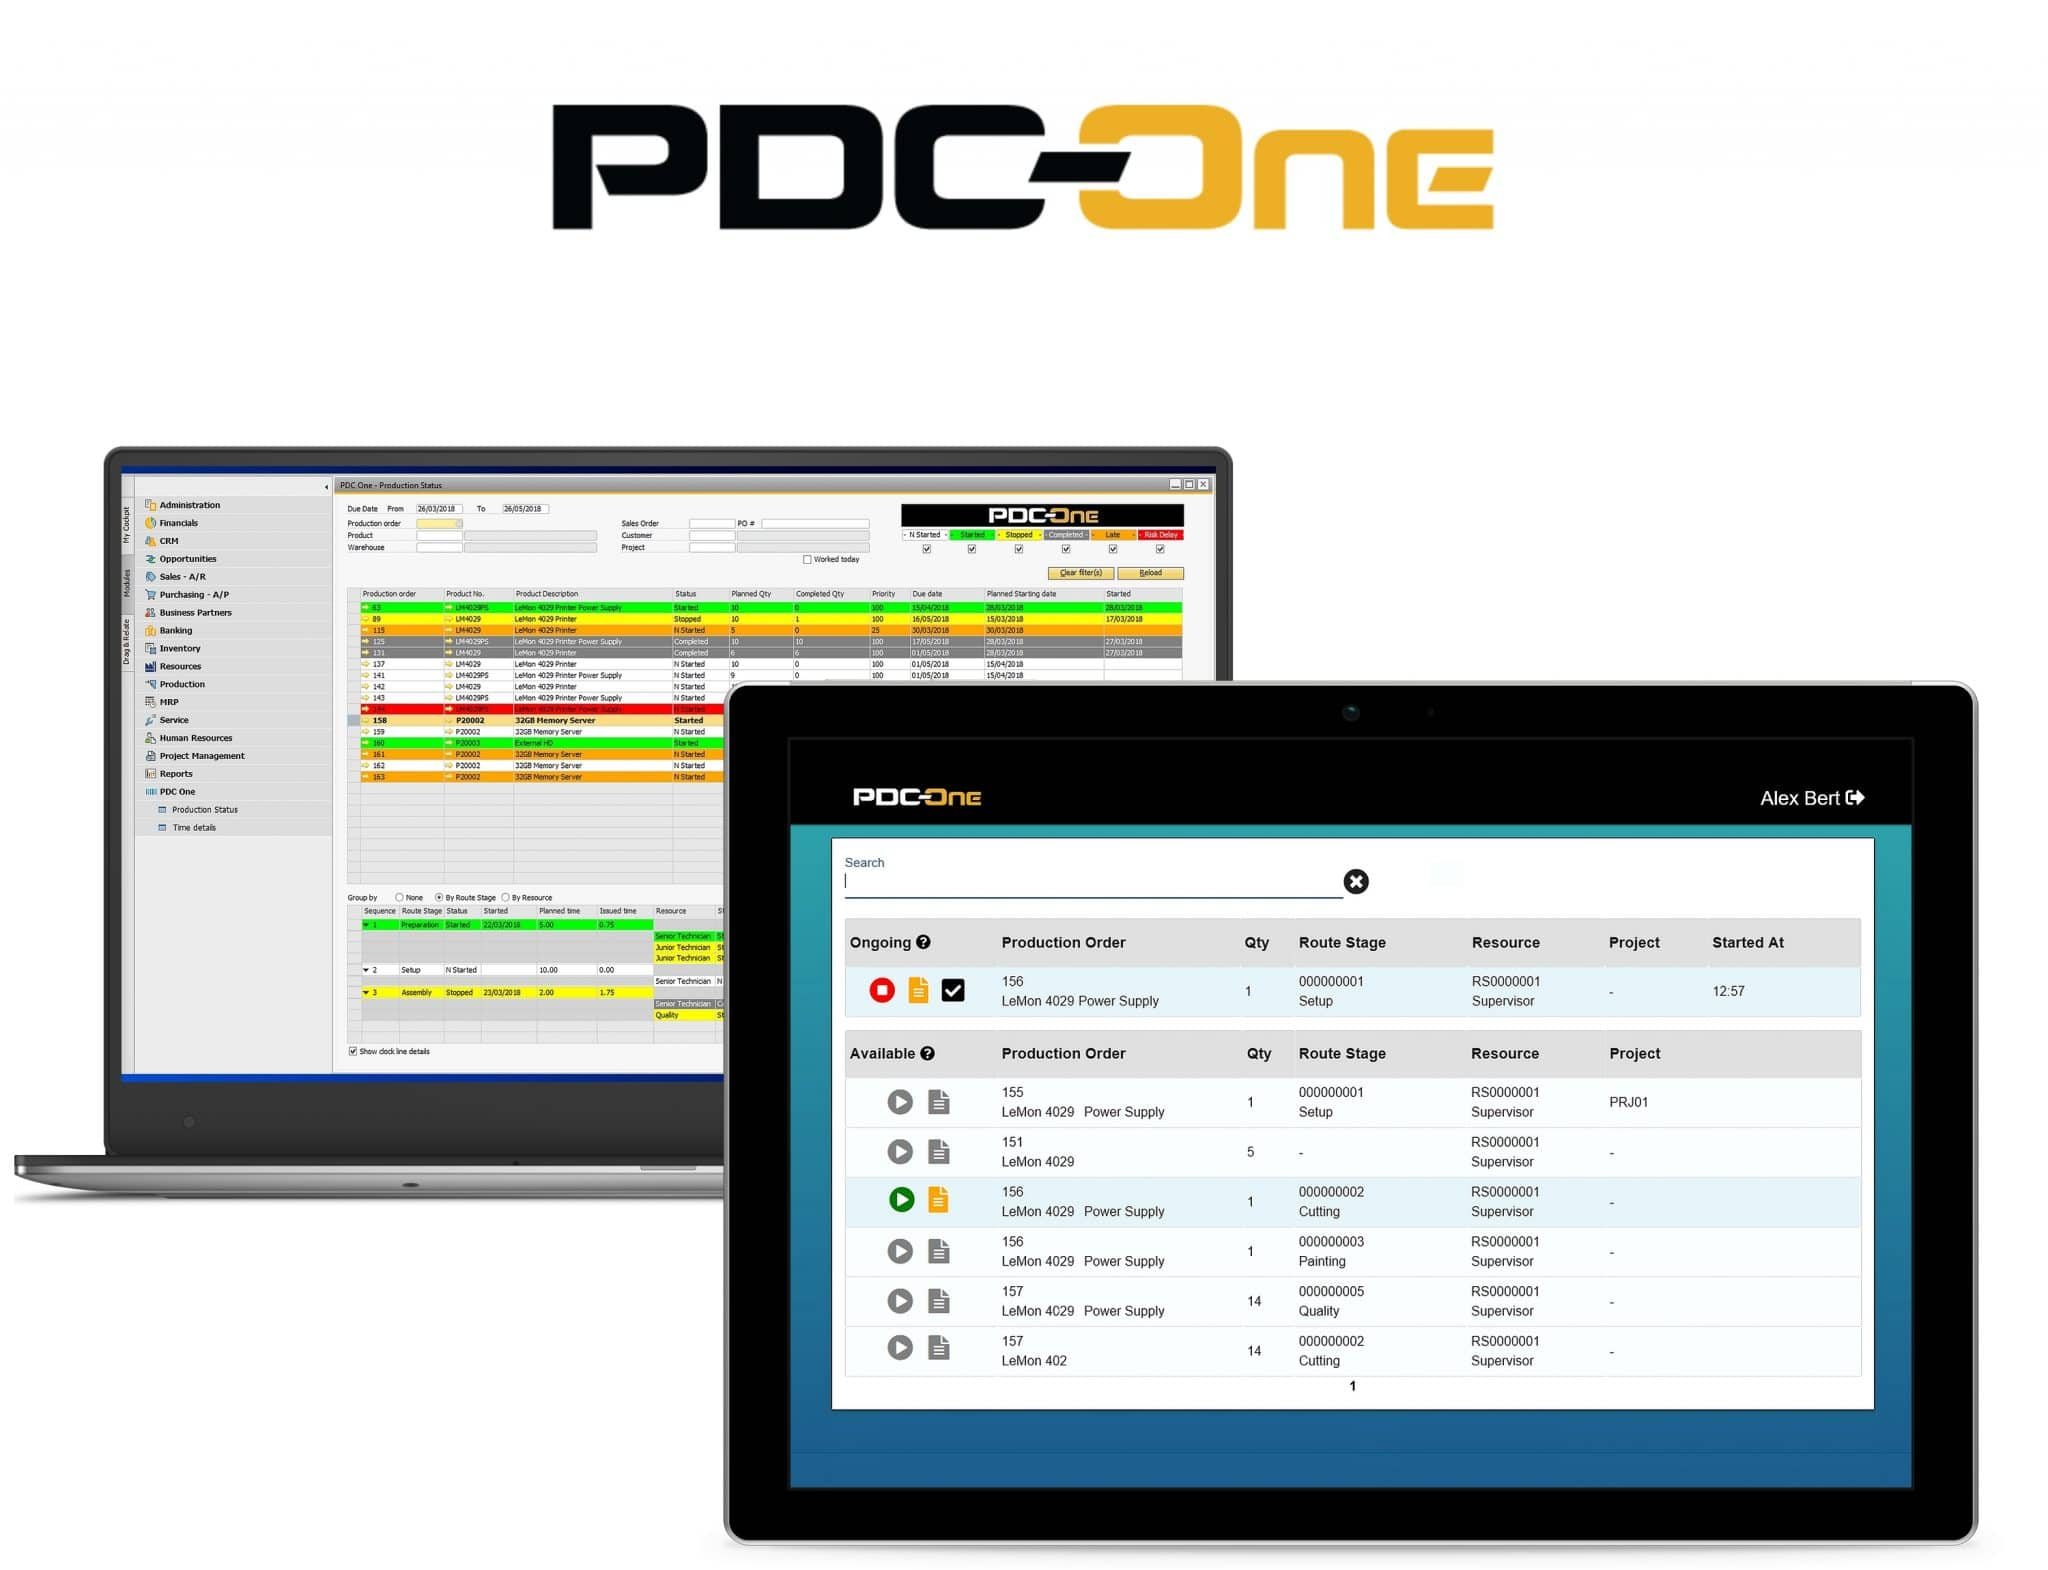 PDC-One - One Screens